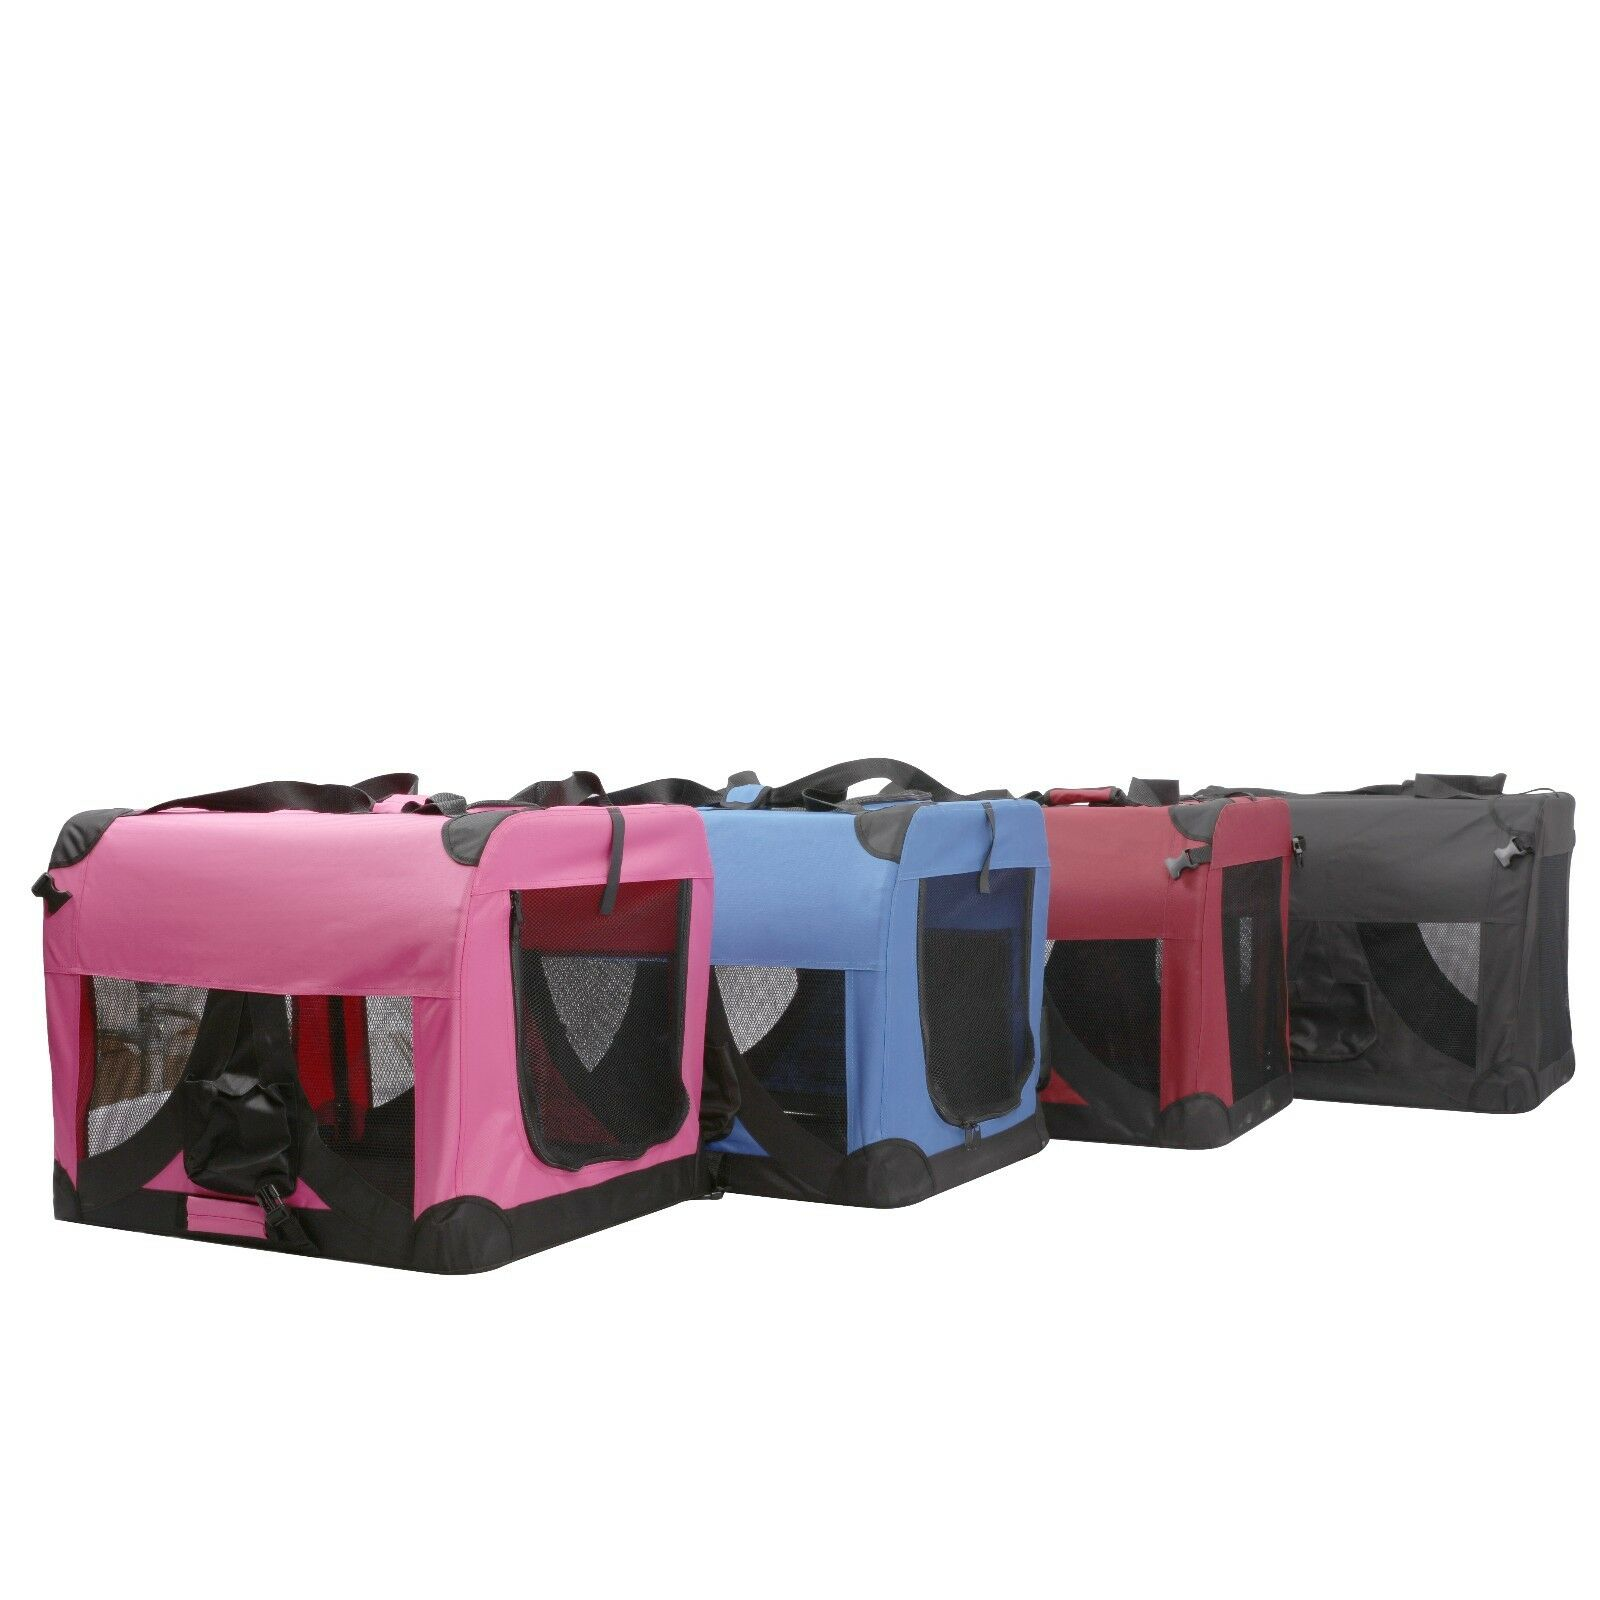 Heavy Duty Portable House : Heavy duty cat dog pet portable crates cage house kennels